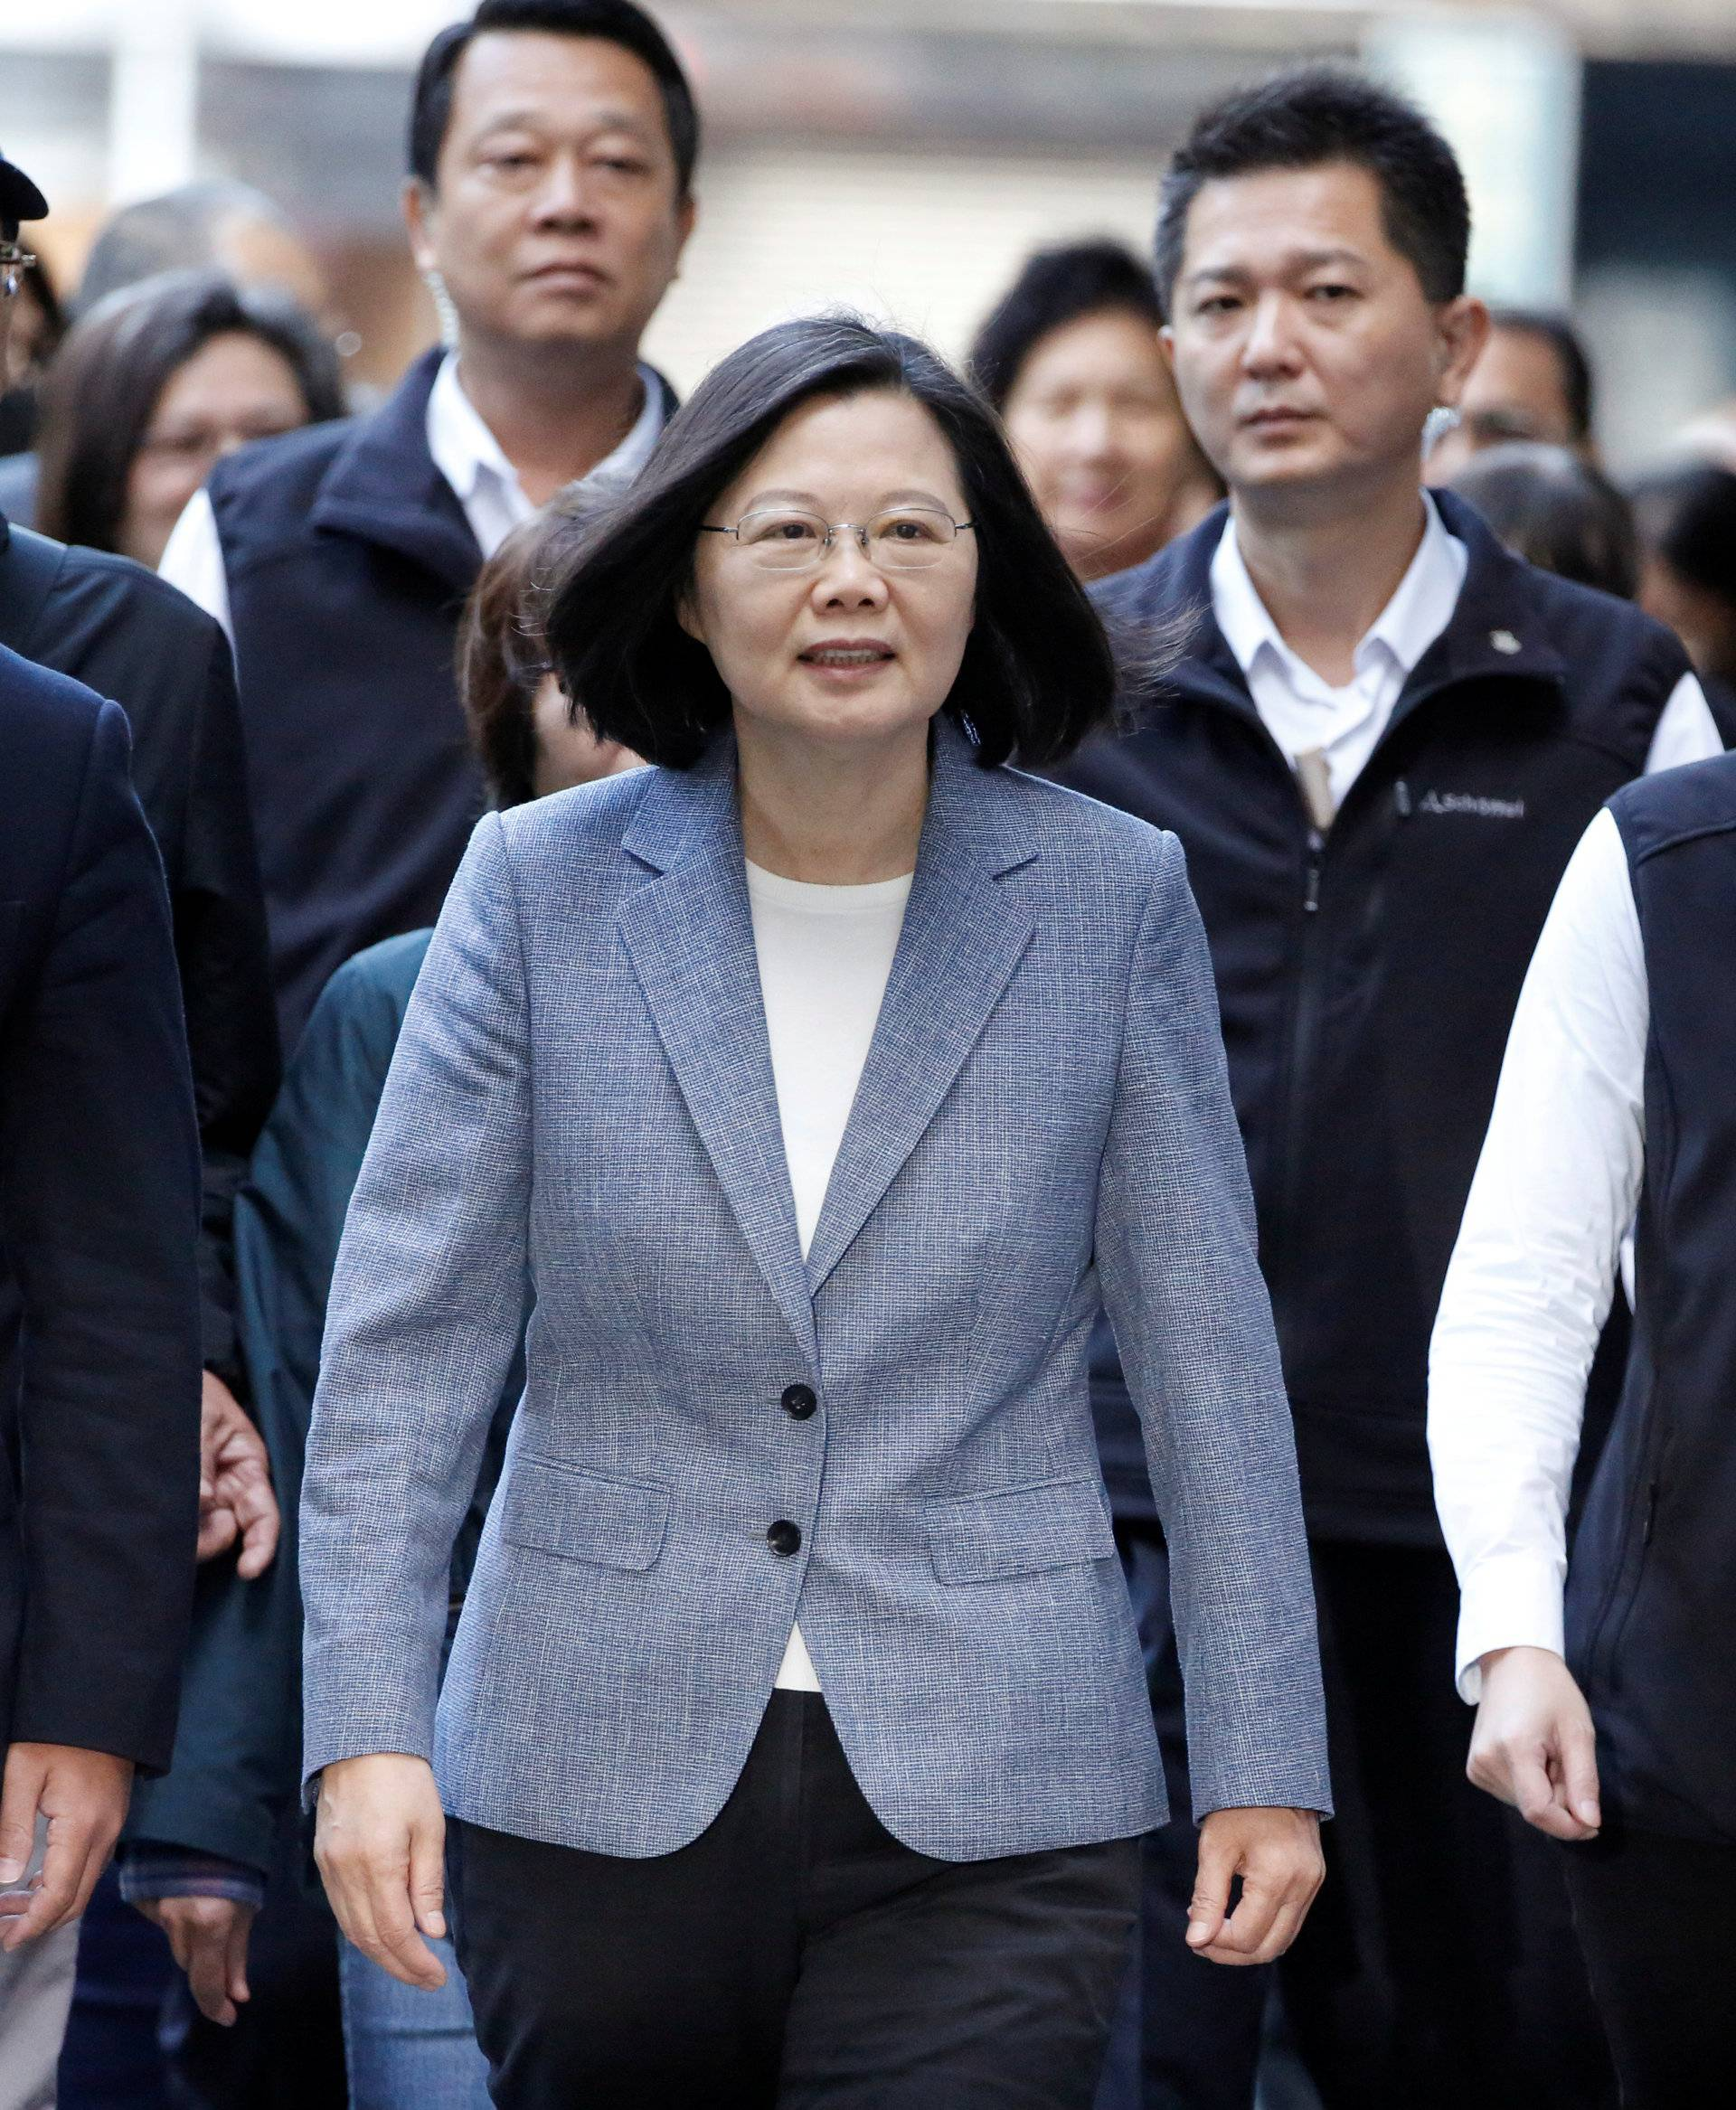 Taiwan President Tsai arrives to cast her vote for the local elections in New Taipei City